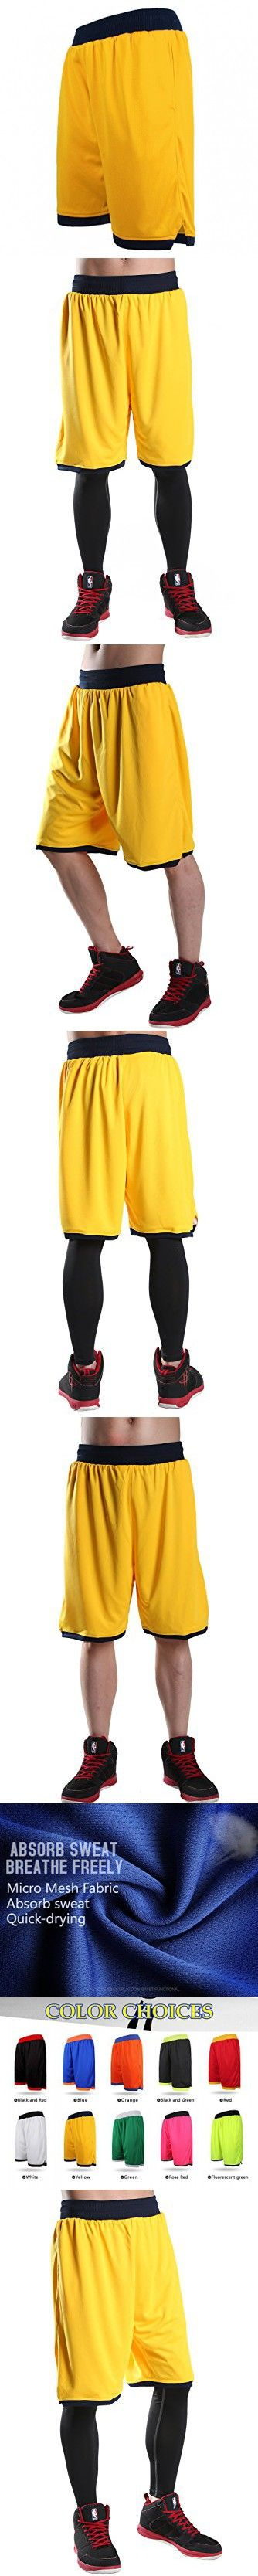 "JEASS Basketball Shorts for Men Workout Shorts with Pockets Mesh Lining Large Yellow ""Large(Waist 34""- 36"")"""